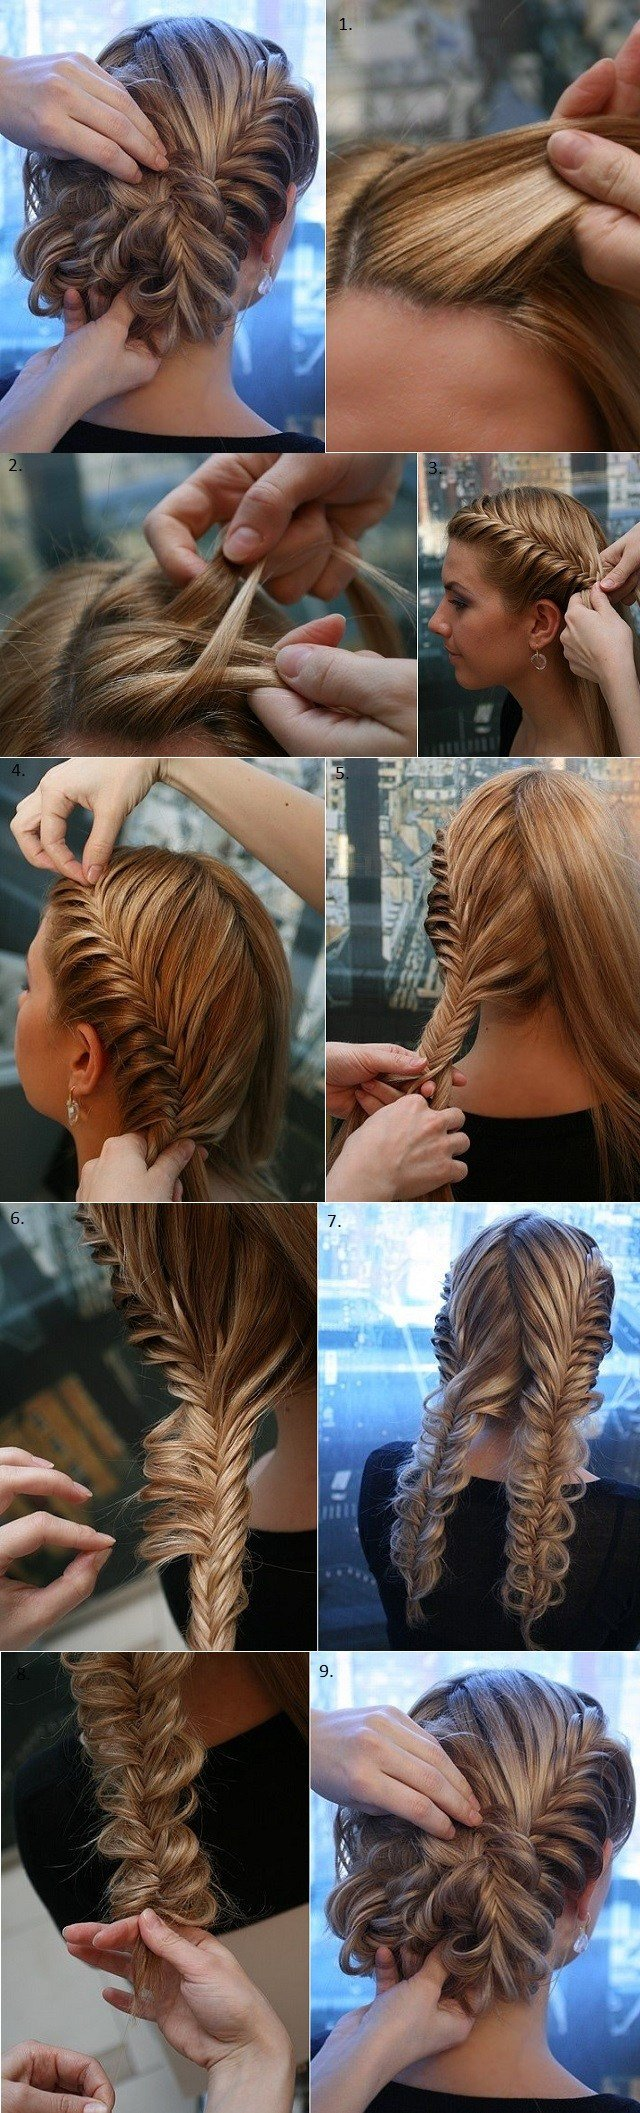 The Best Amazing Braided Hairstyle Alldaychic Pictures